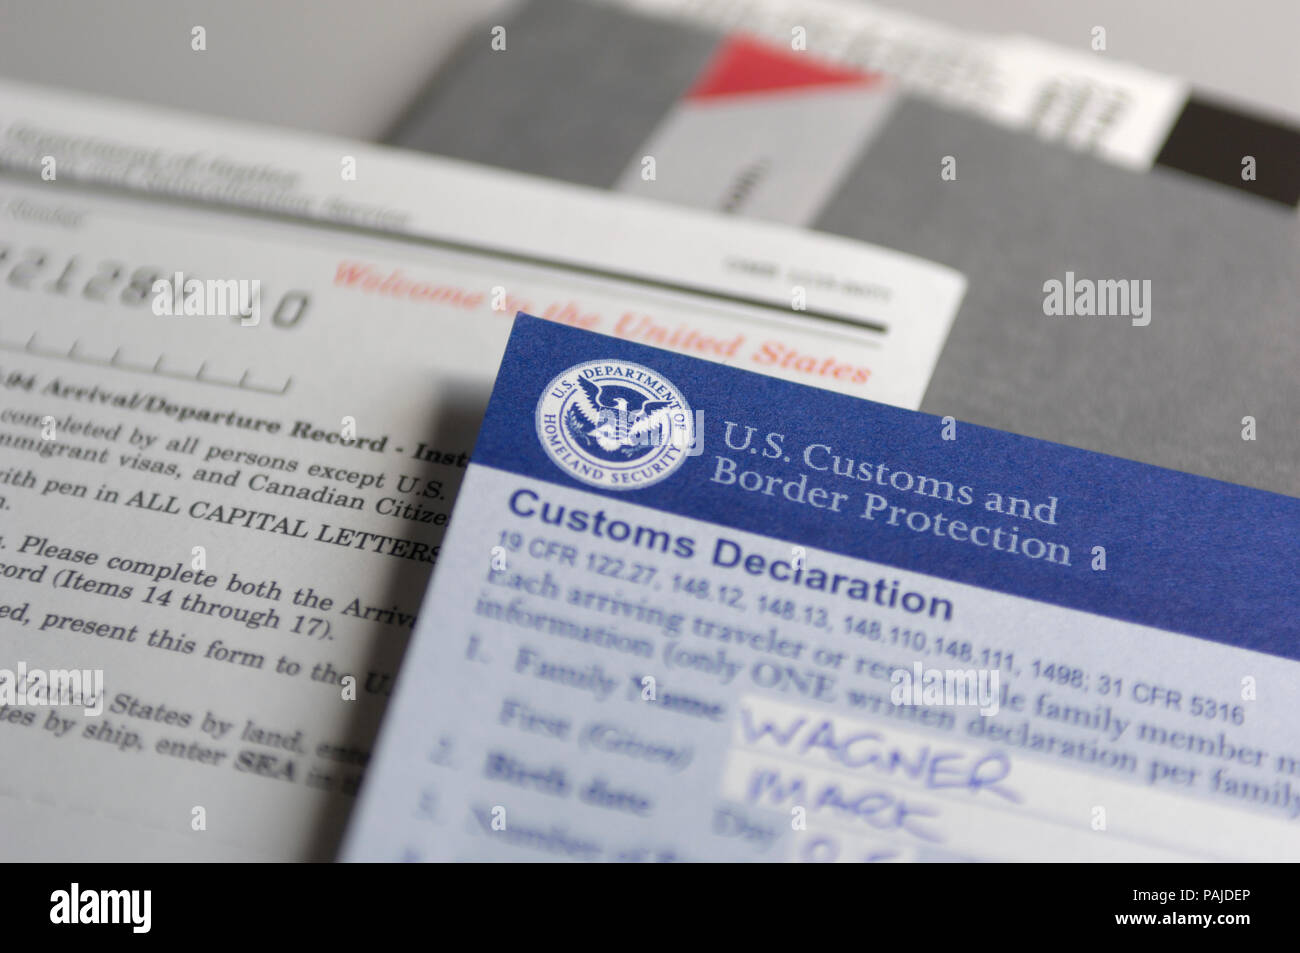 Us immigration and customs forms us customs and border protection us immigration and customs forms us customs and border protection documents enroute lgw msp on flight number nw43 thecheapjerseys Images